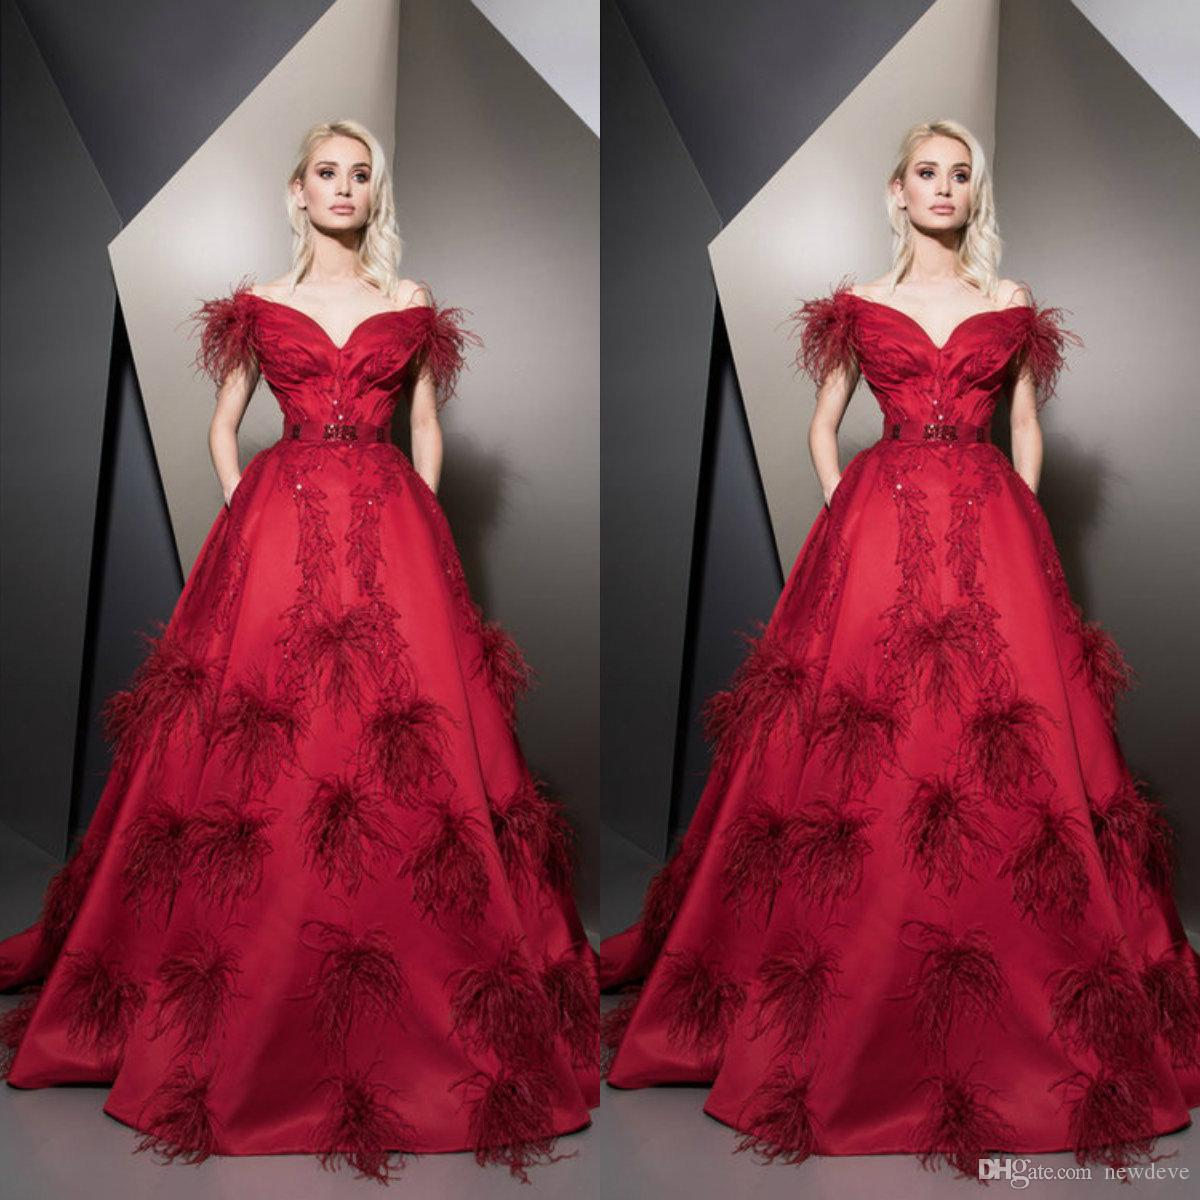 Ziad Nakad 2019 Prom Dresses Off Shoulder Feather Beaded A Line Evening Dress Floor Length Formal Party Gown Special Occasion Gowns